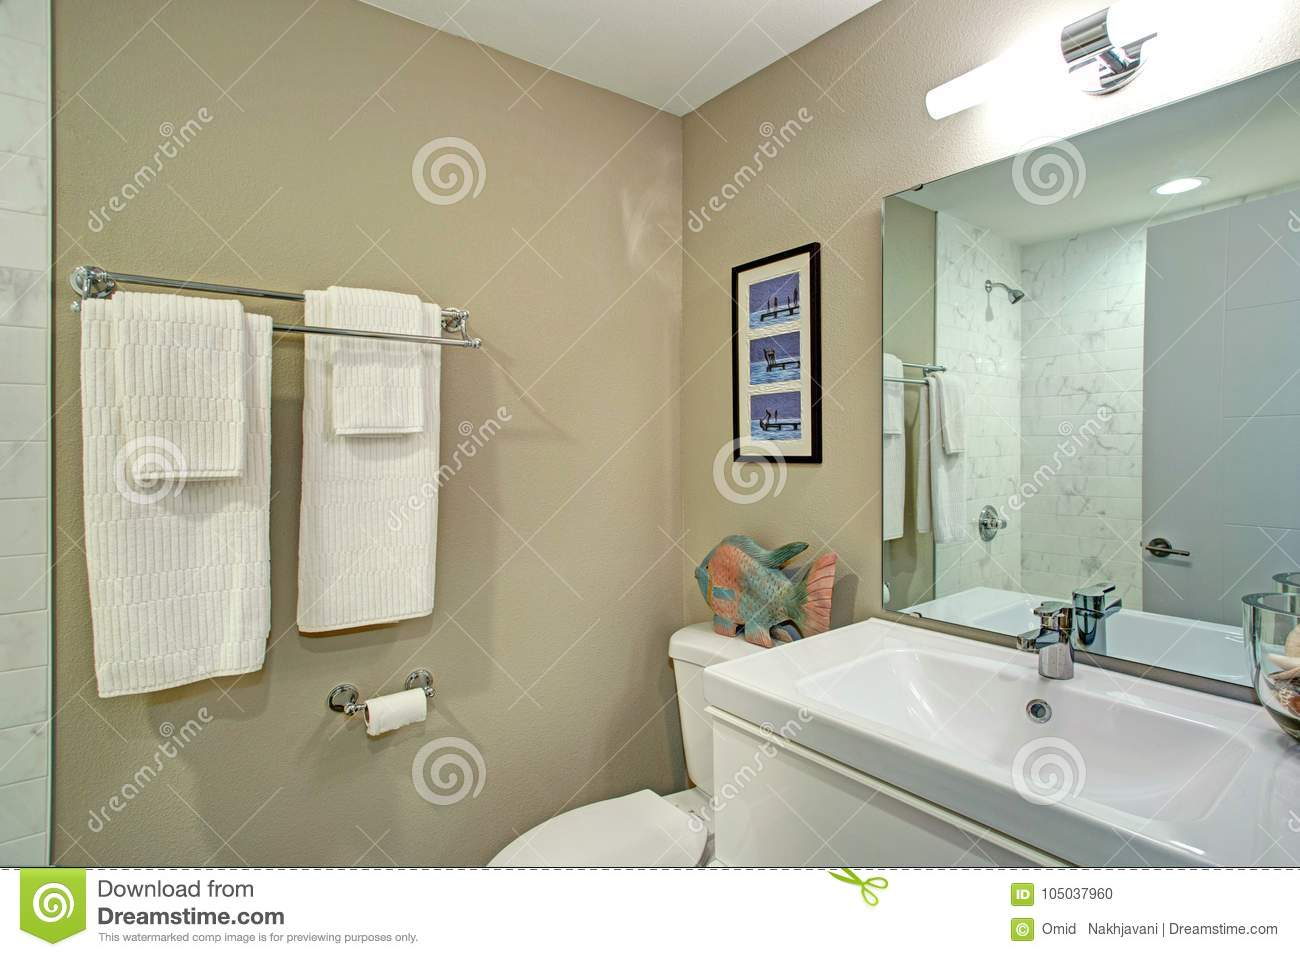 Ensuite Bathroom With Bathroom Vanity And A Toilet Stock Photo Image Of Architecture Modern 105037960